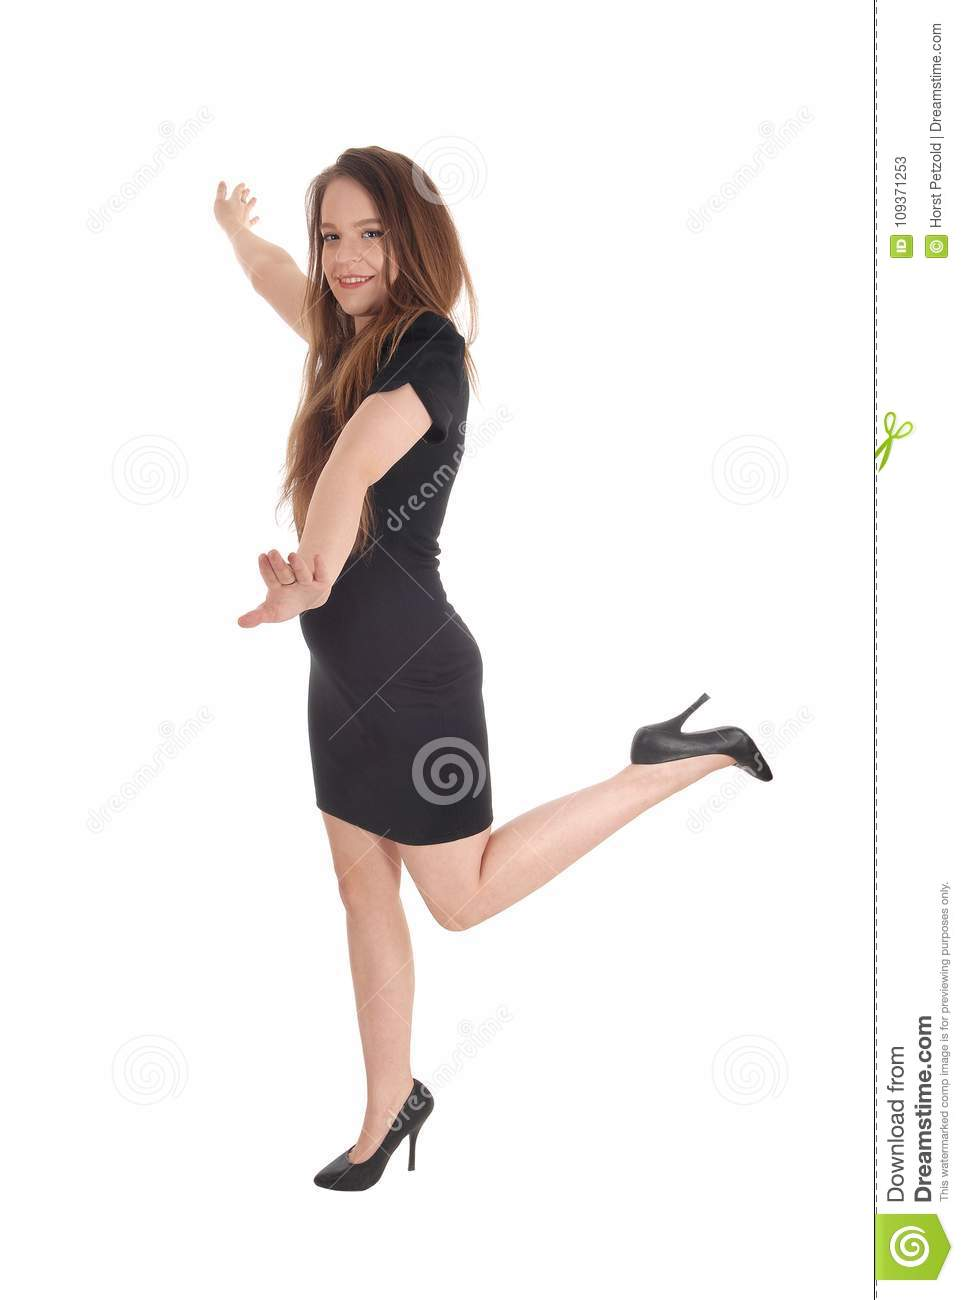 Beautiful woman dancing in a black dress